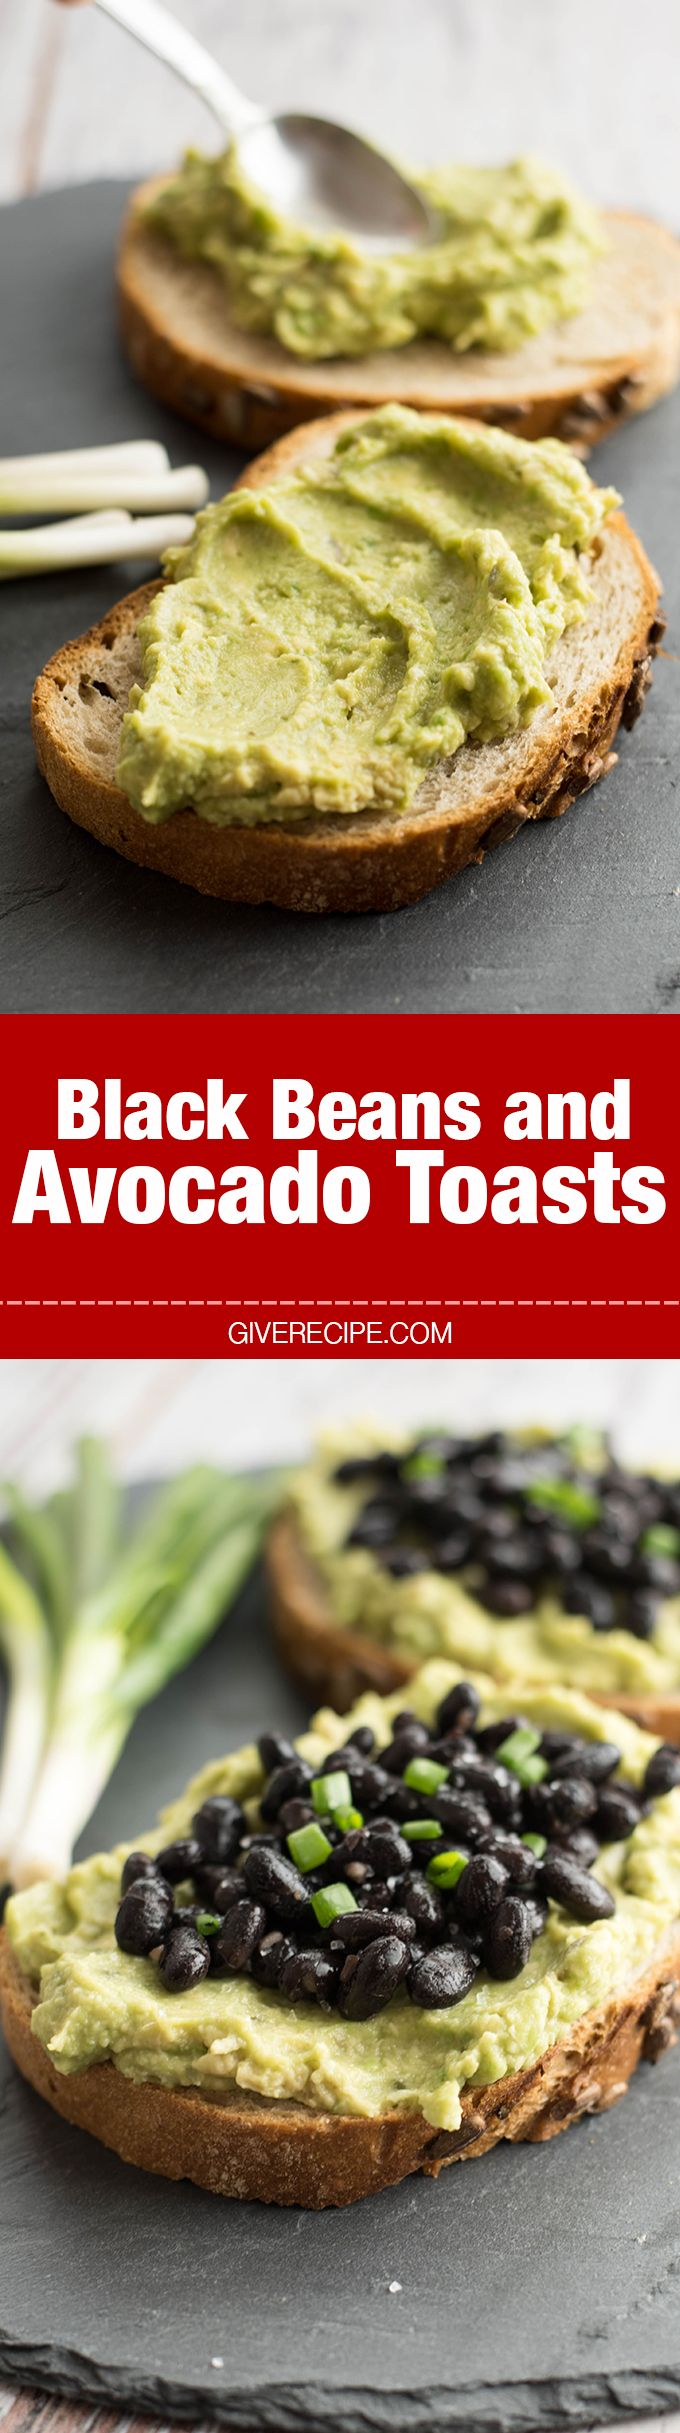 how to cook dry black beans fast